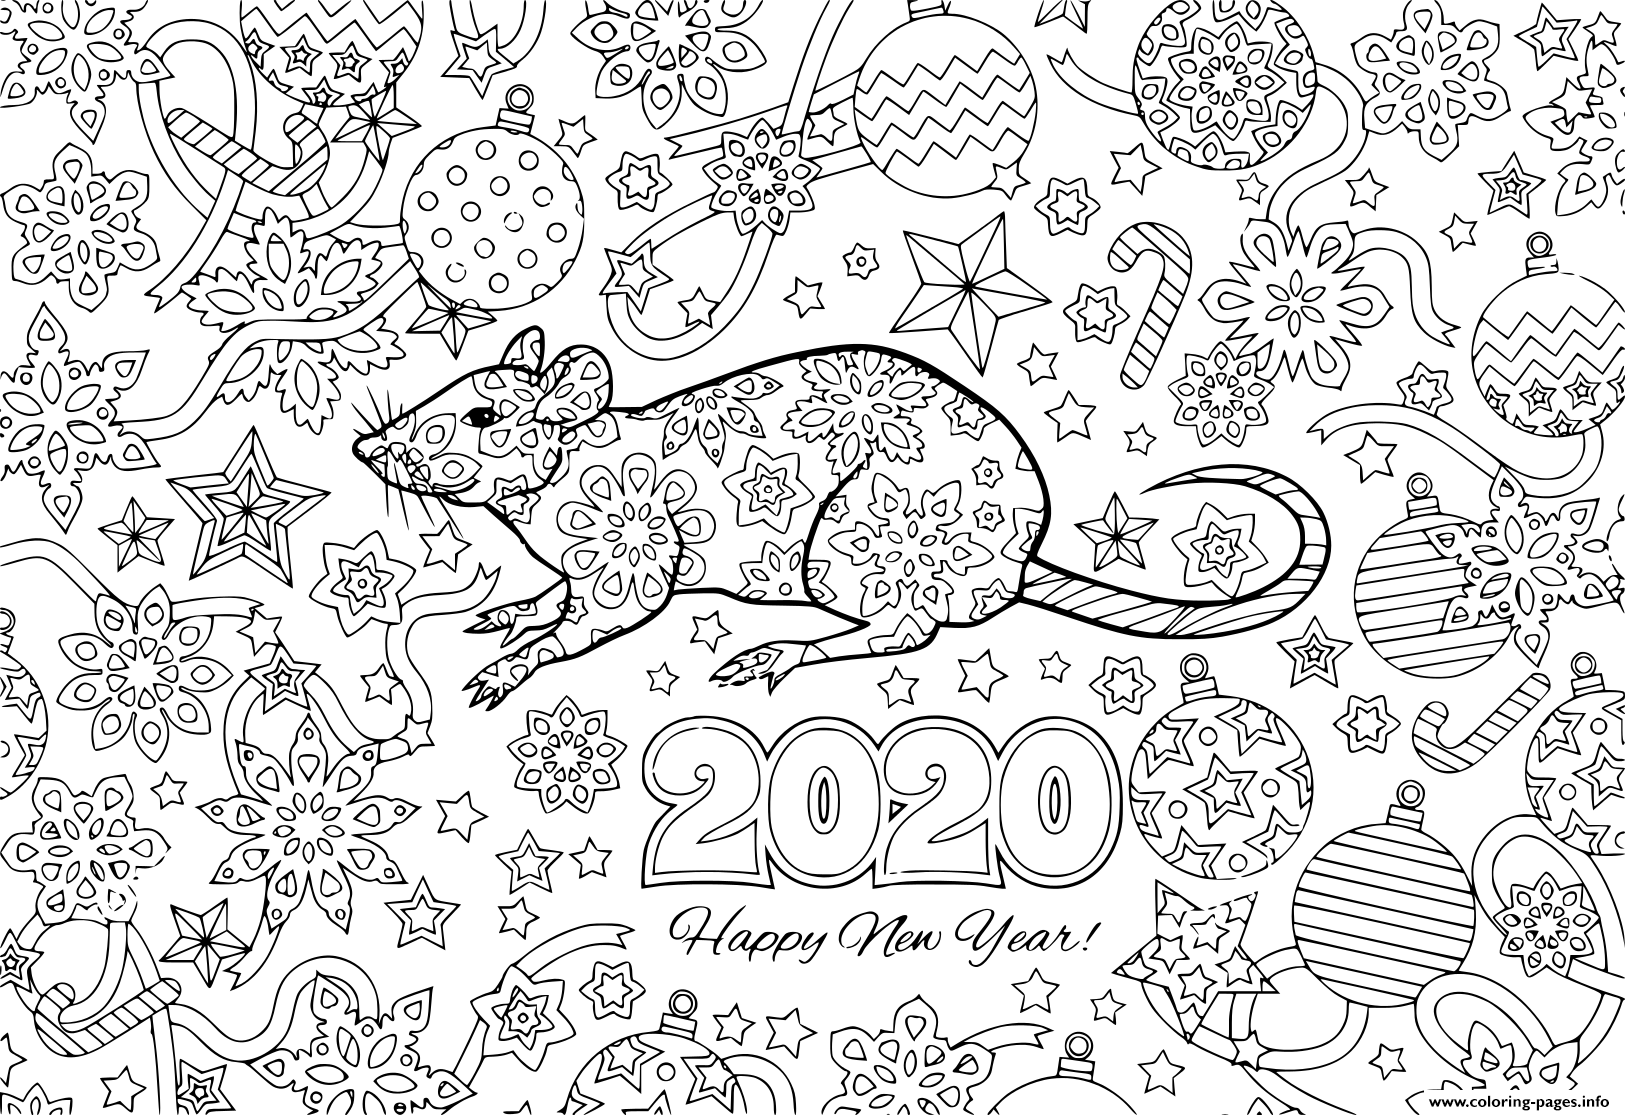 New Year 2020 Rat And Festive Objects Image For Calendar